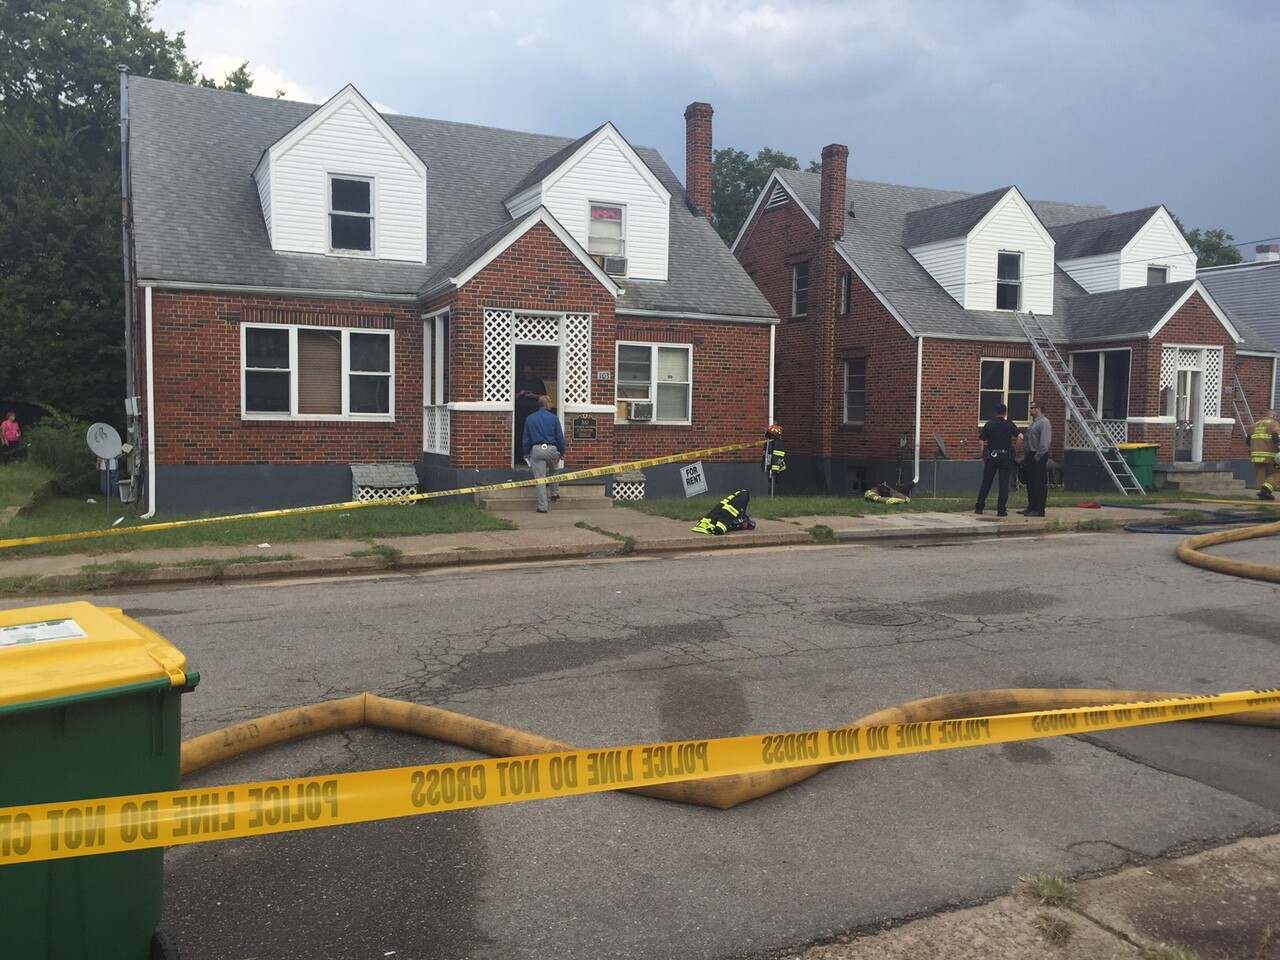 Photos: Hopewell apartment fire leaves two with life-threatening injuries